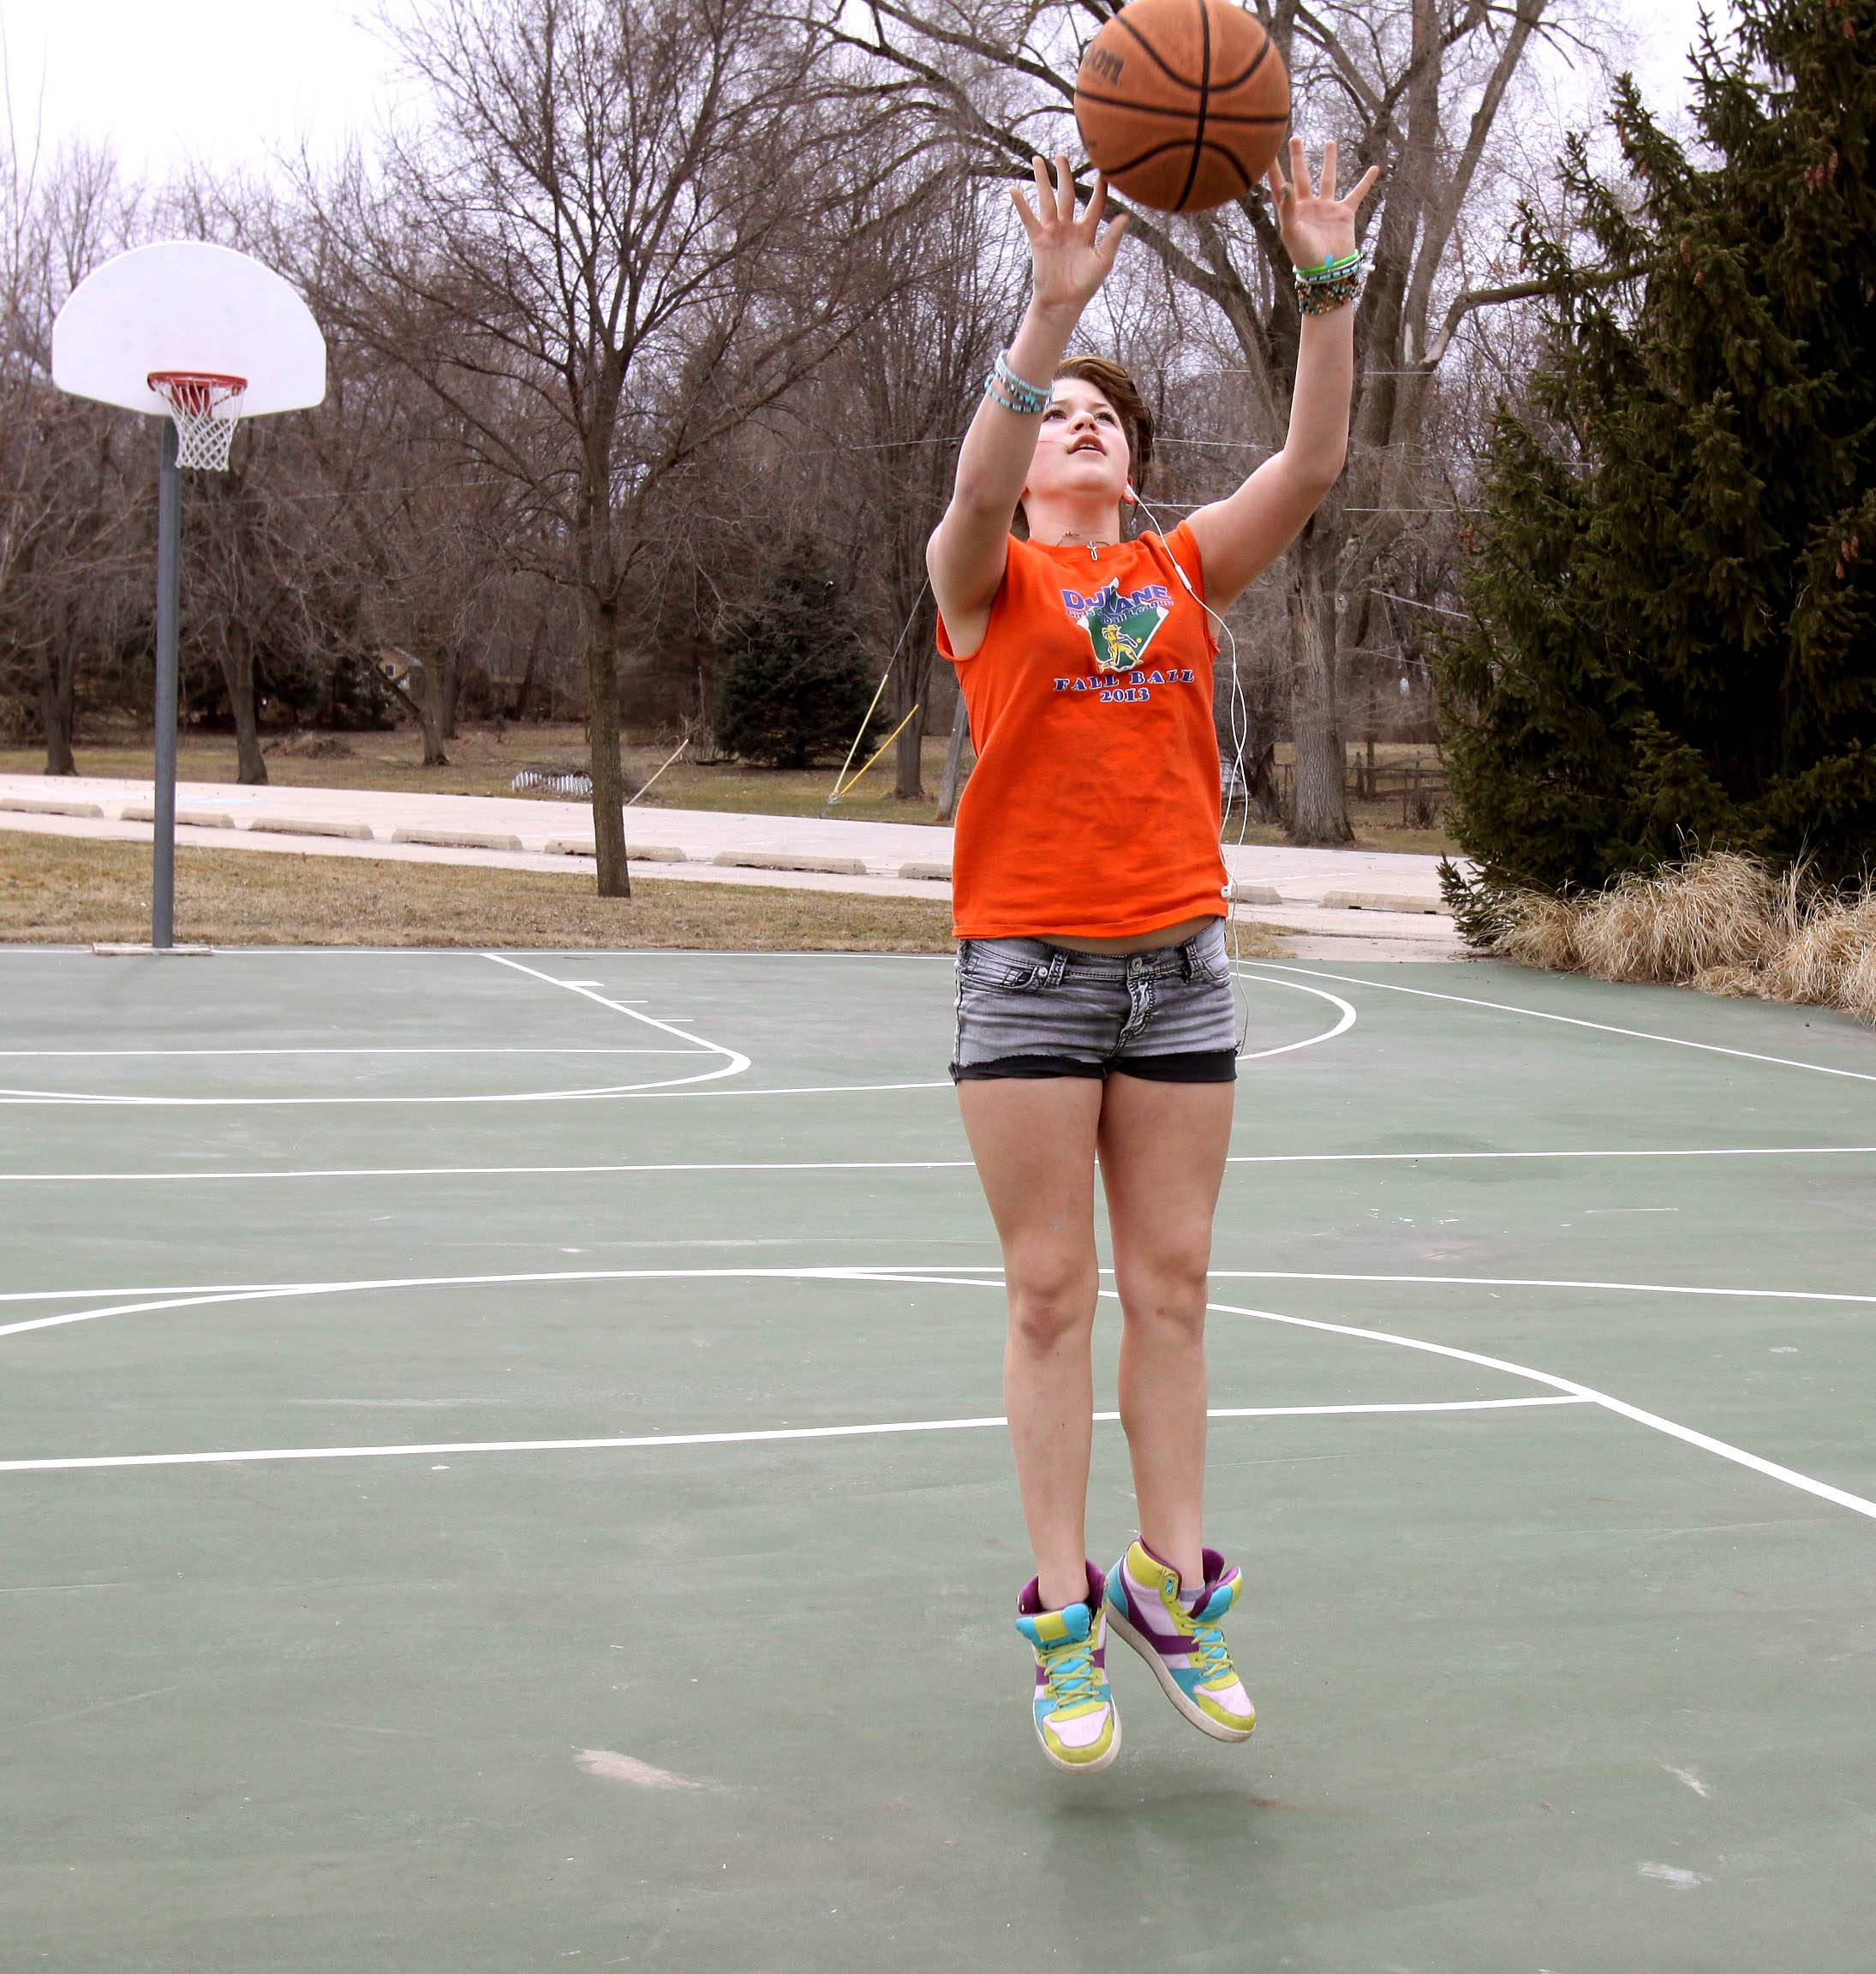 Our crazy weather continues. Monday's warm temperatures meant Skyler Waclaw, 12 of Warrenville, could play a little basketball on Monday at Cerny Park in Warrenville. But the cold returned Tuesday. More rain and cold temperatures are expected this week.